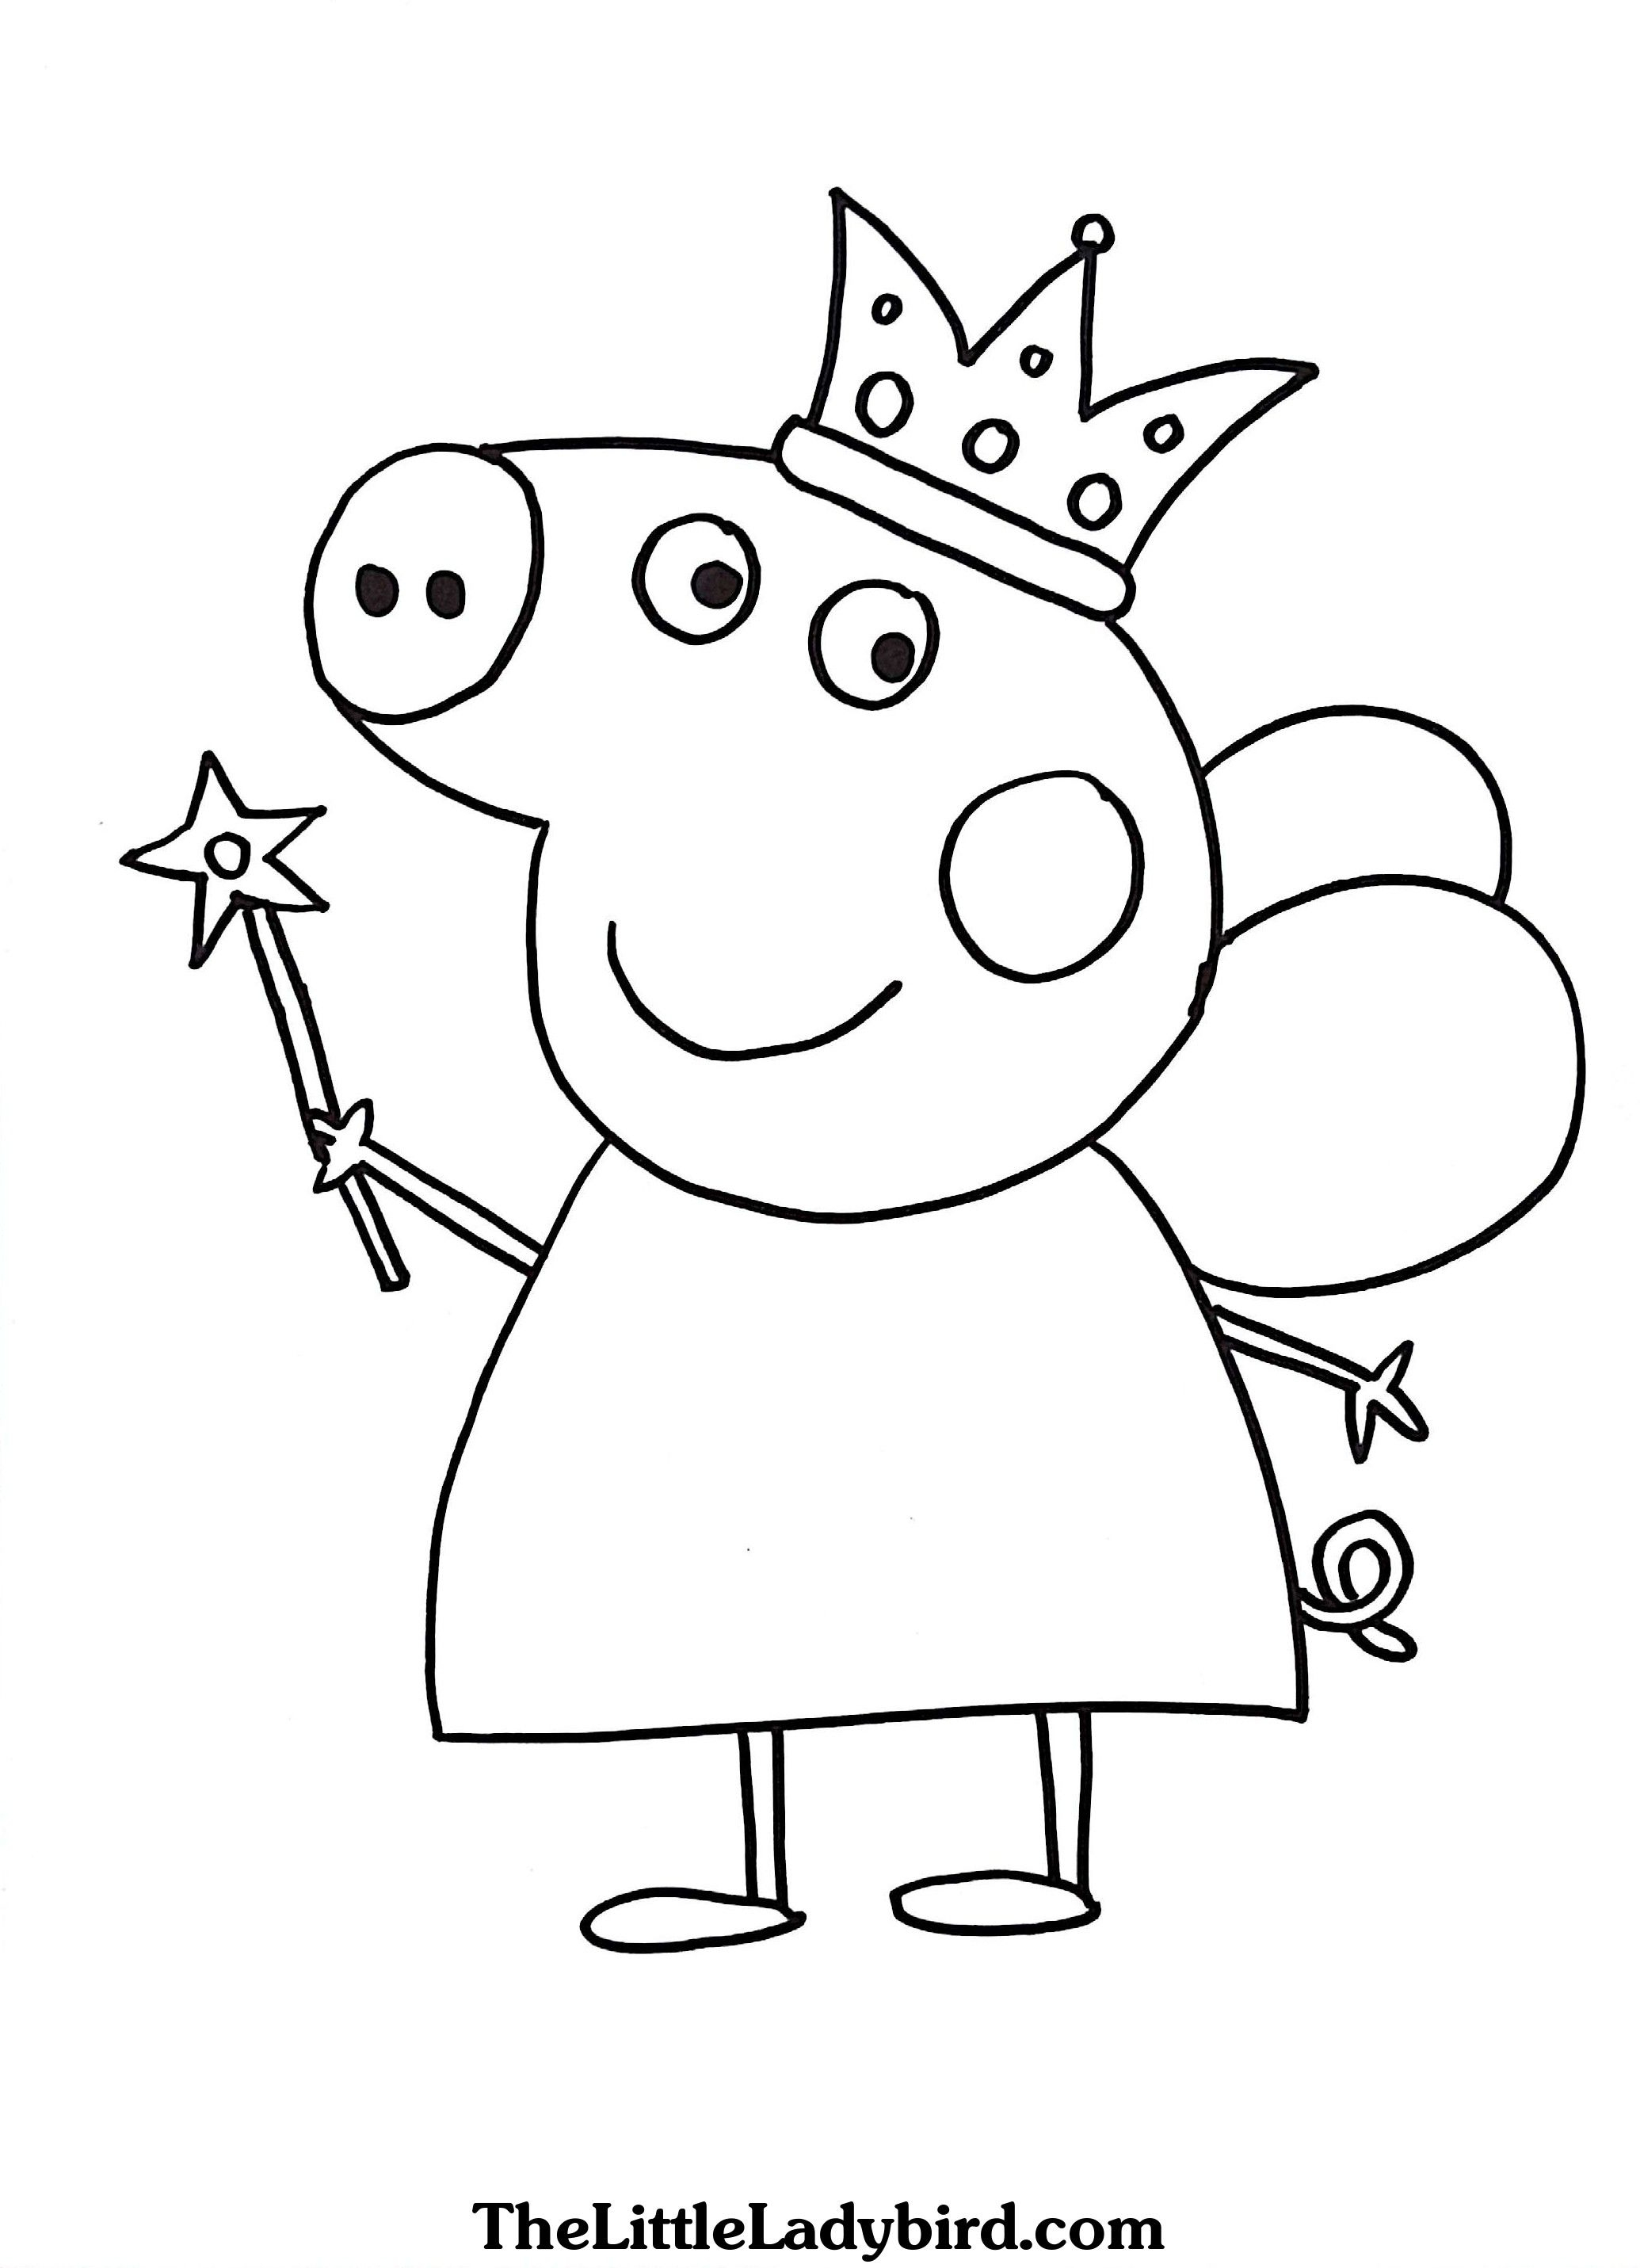 Pinashley Adkins On Vinyl Projects | Pinterest | Coloring Pages - Pig Coloring Sheets Free Printable